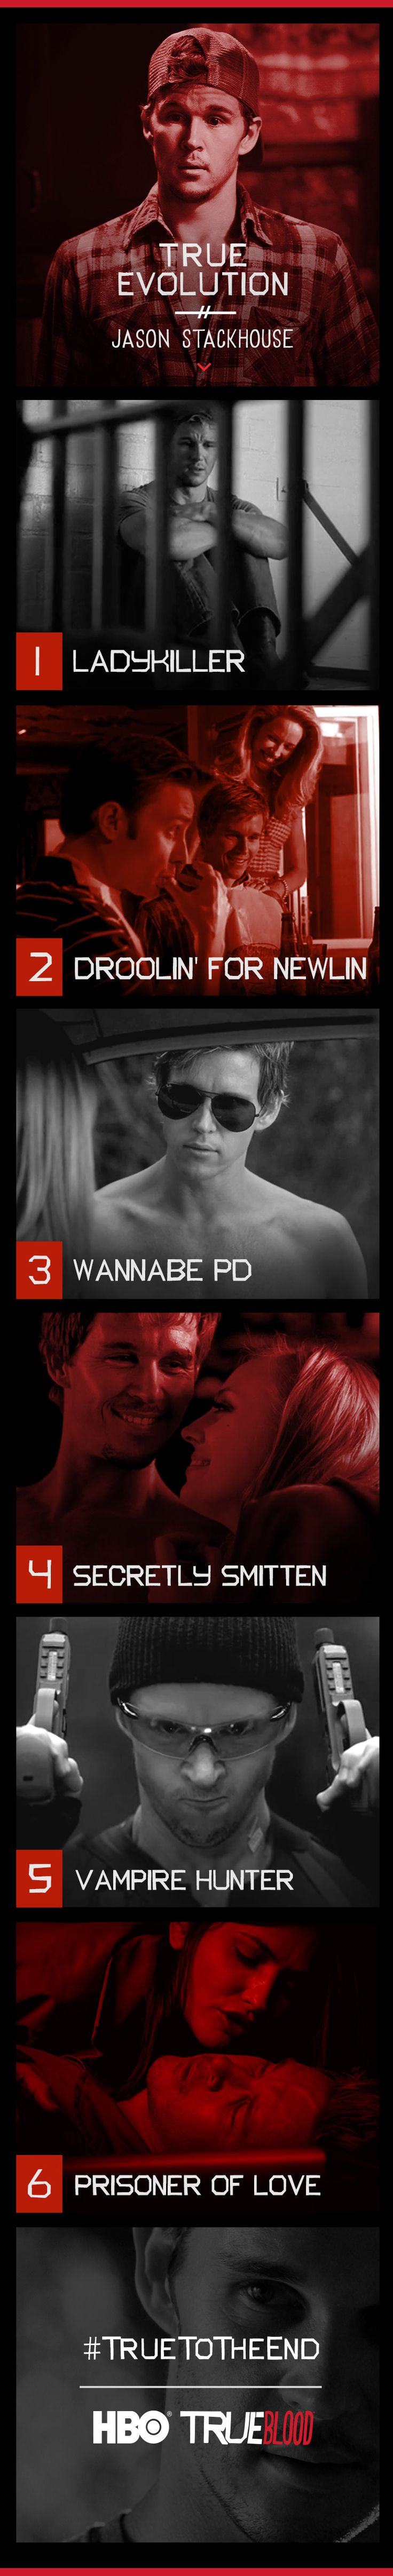 Jason Stackhouse, as played by Ryan Kwanten, on True Blood, seasons 1 - 7